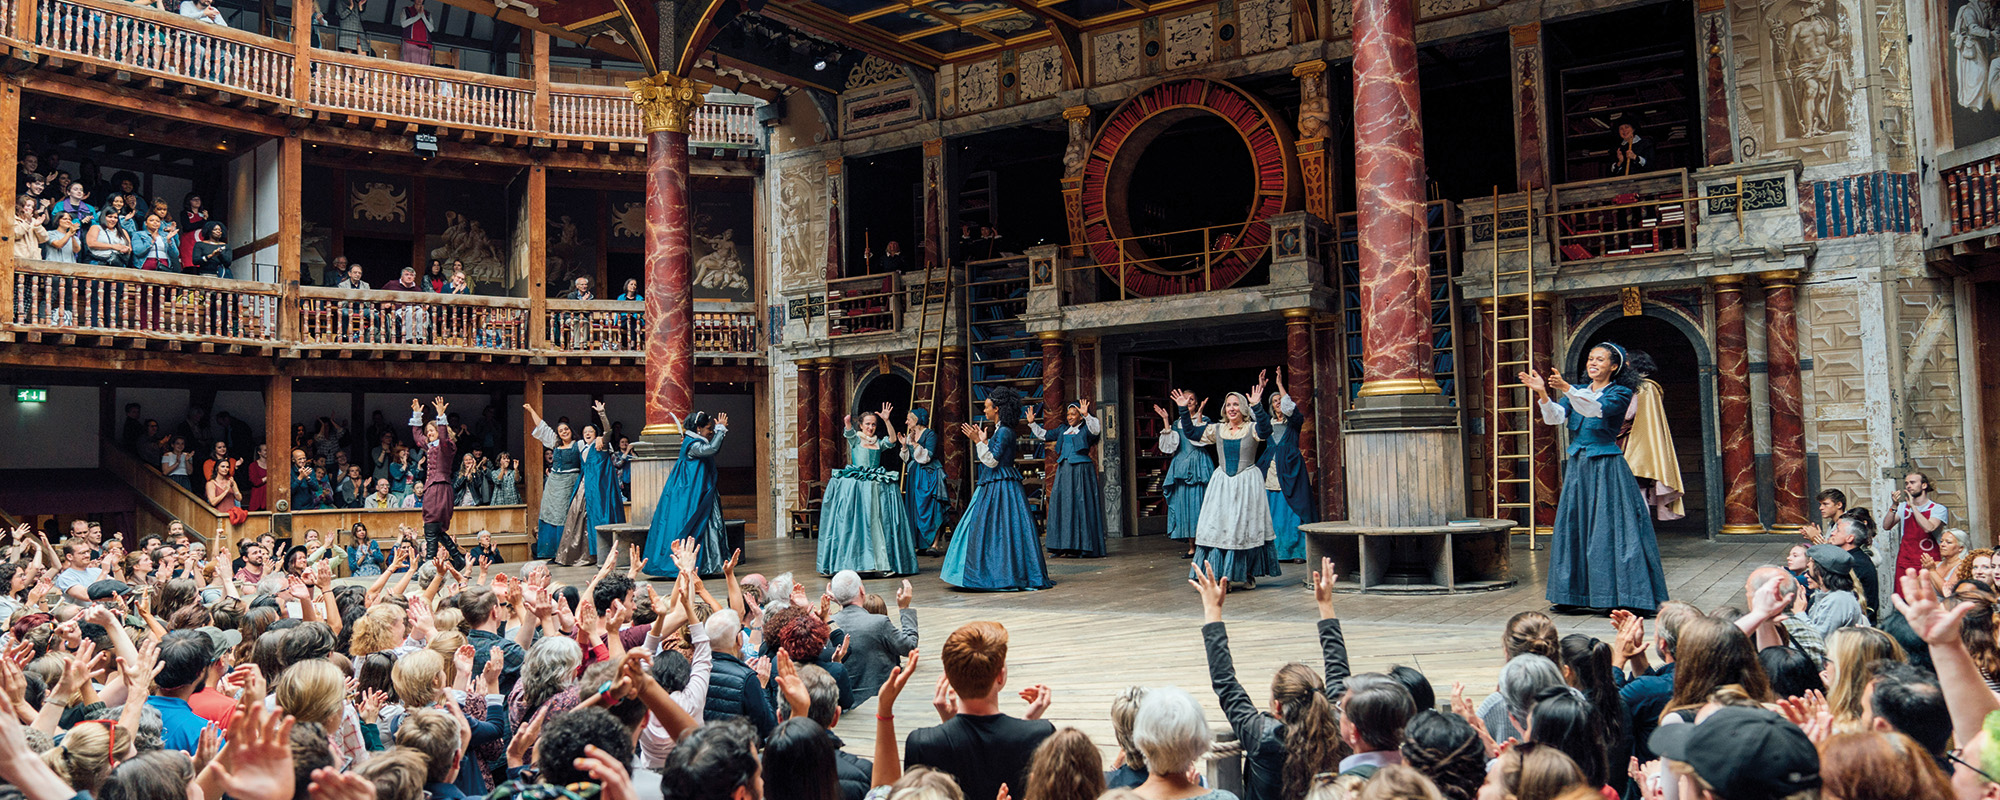 The cast of 'Emilia' gather on stage with their arms in the air, the yard audience also have their arms in the air